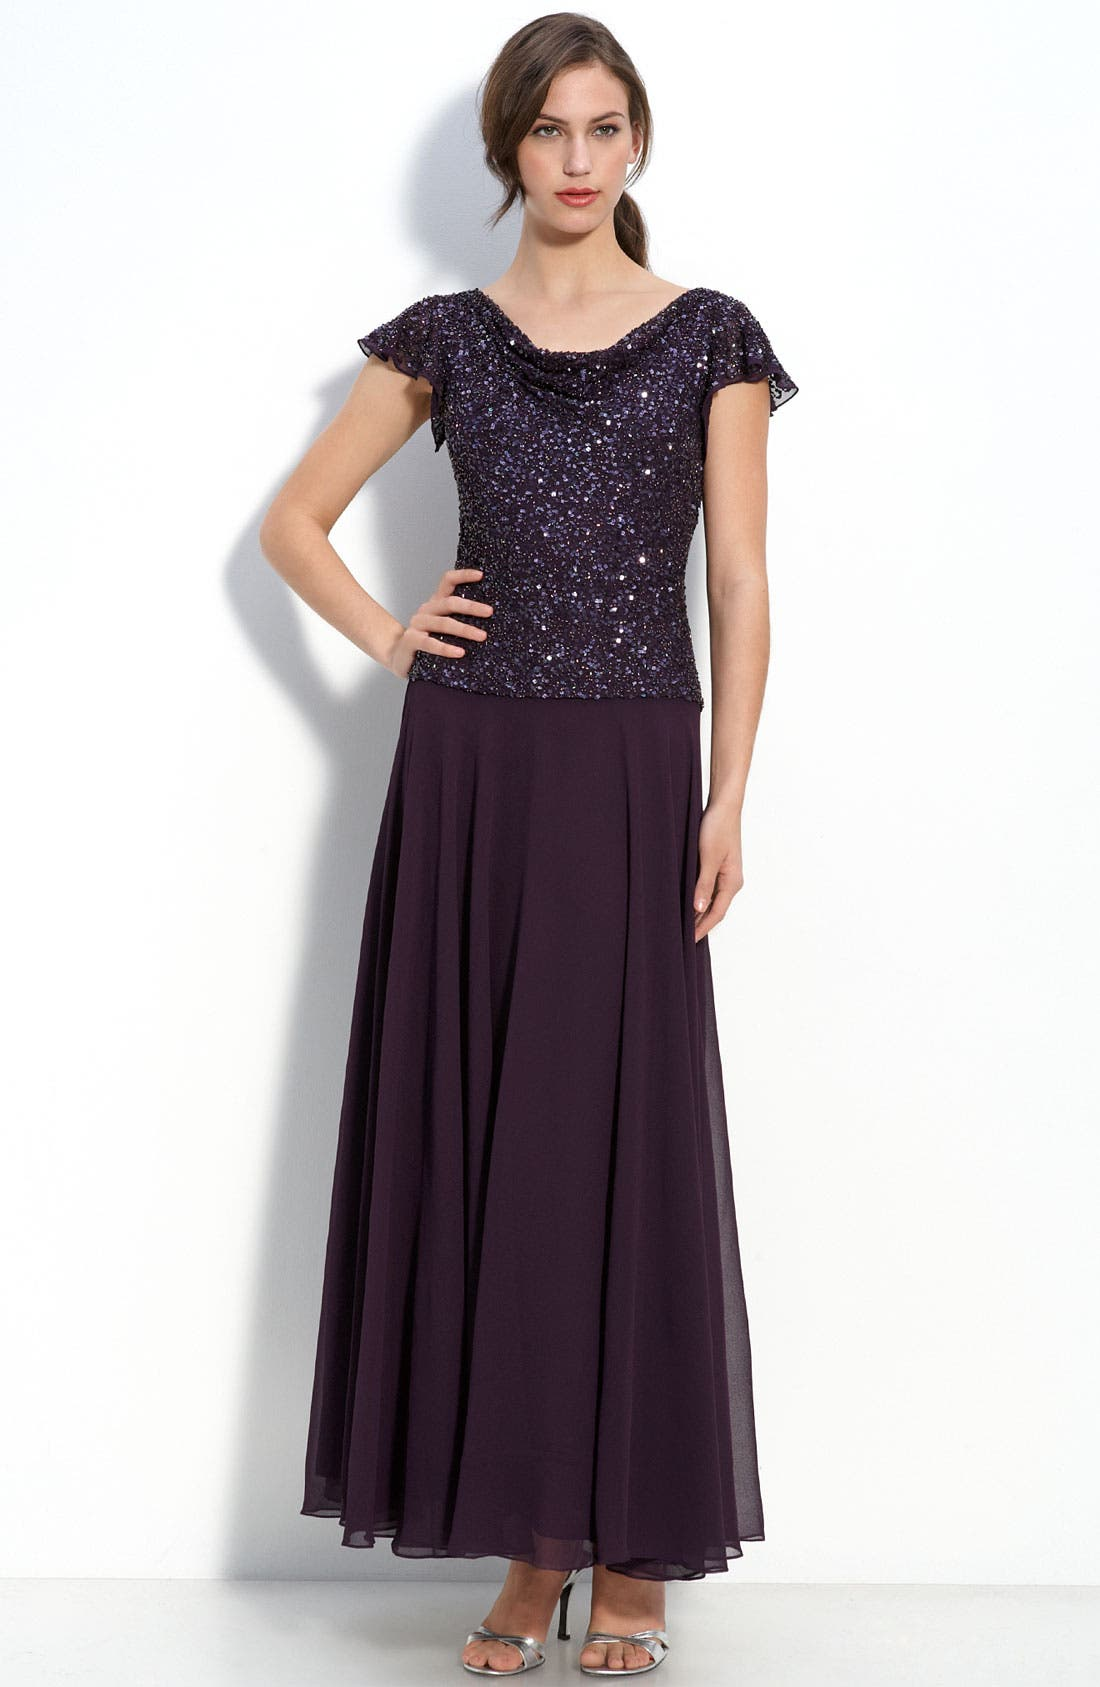 Main Image - J Kara Beaded Mock Two Piece Chiffon Dress